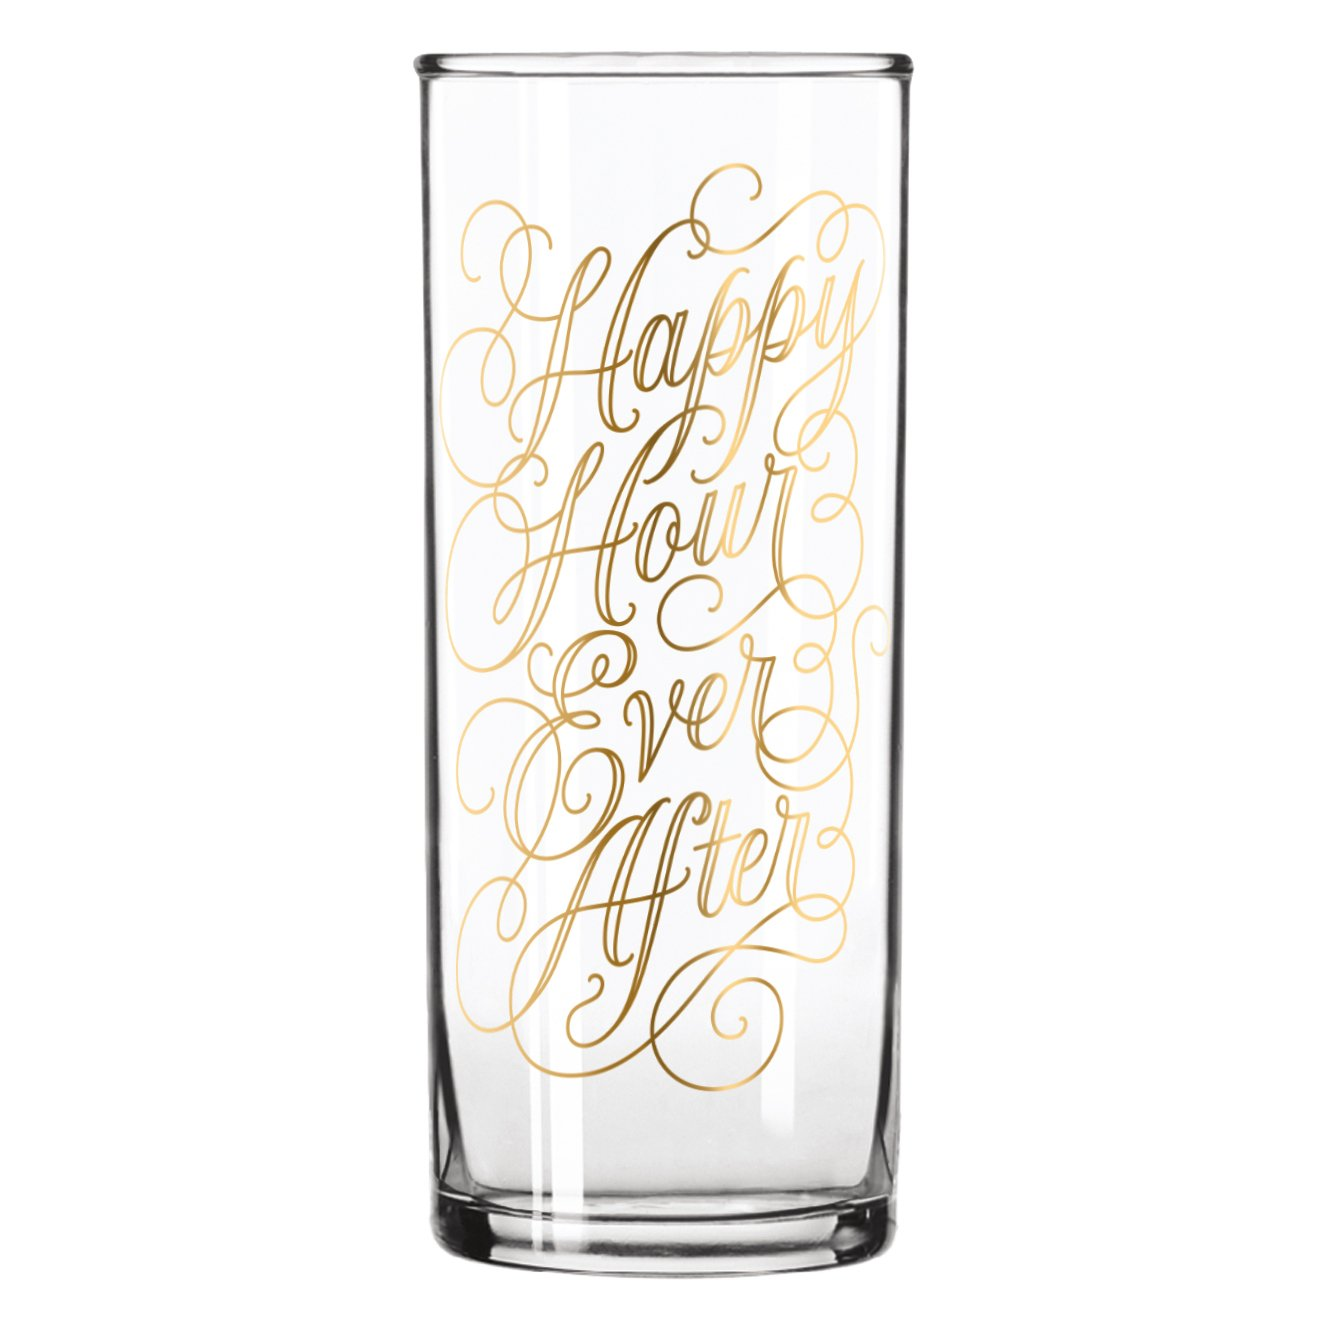 Easy, Tiger Tall Cocktail Glass with Foil, Gold''Happy Hour Ever After'' (12 oz)